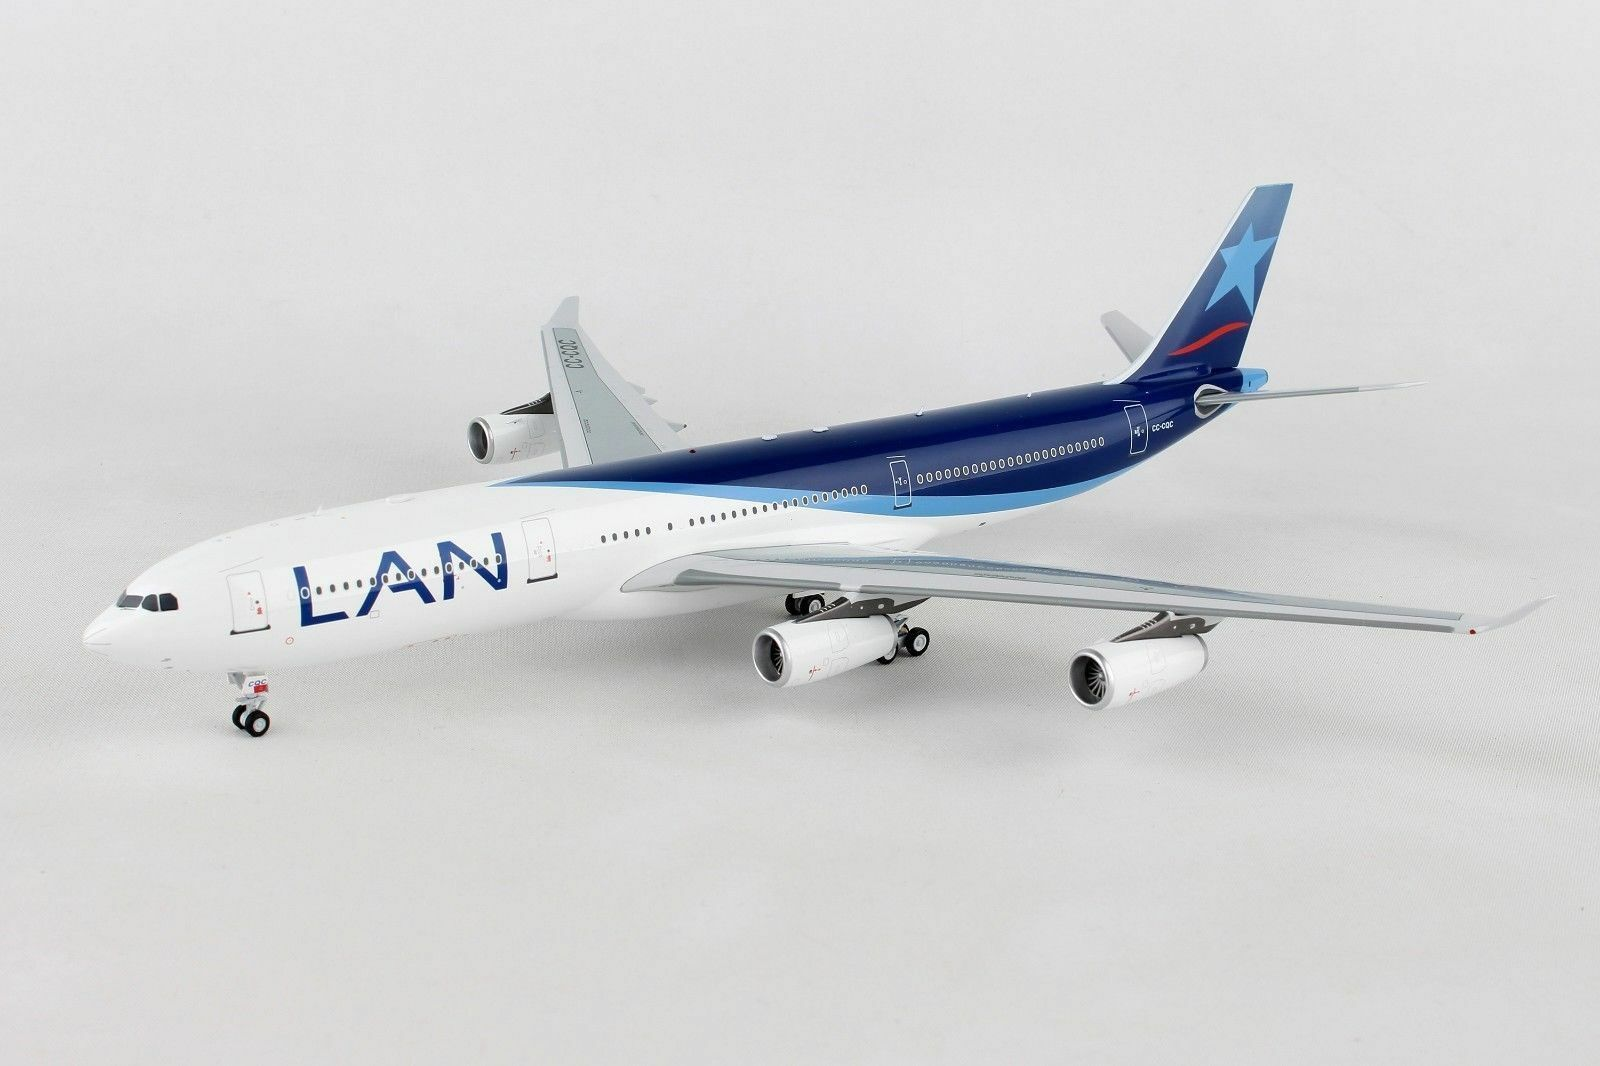 Inflight 200 If343lan001 1 200 Lan Airlines Airbus A340-300 Cc-Cqc